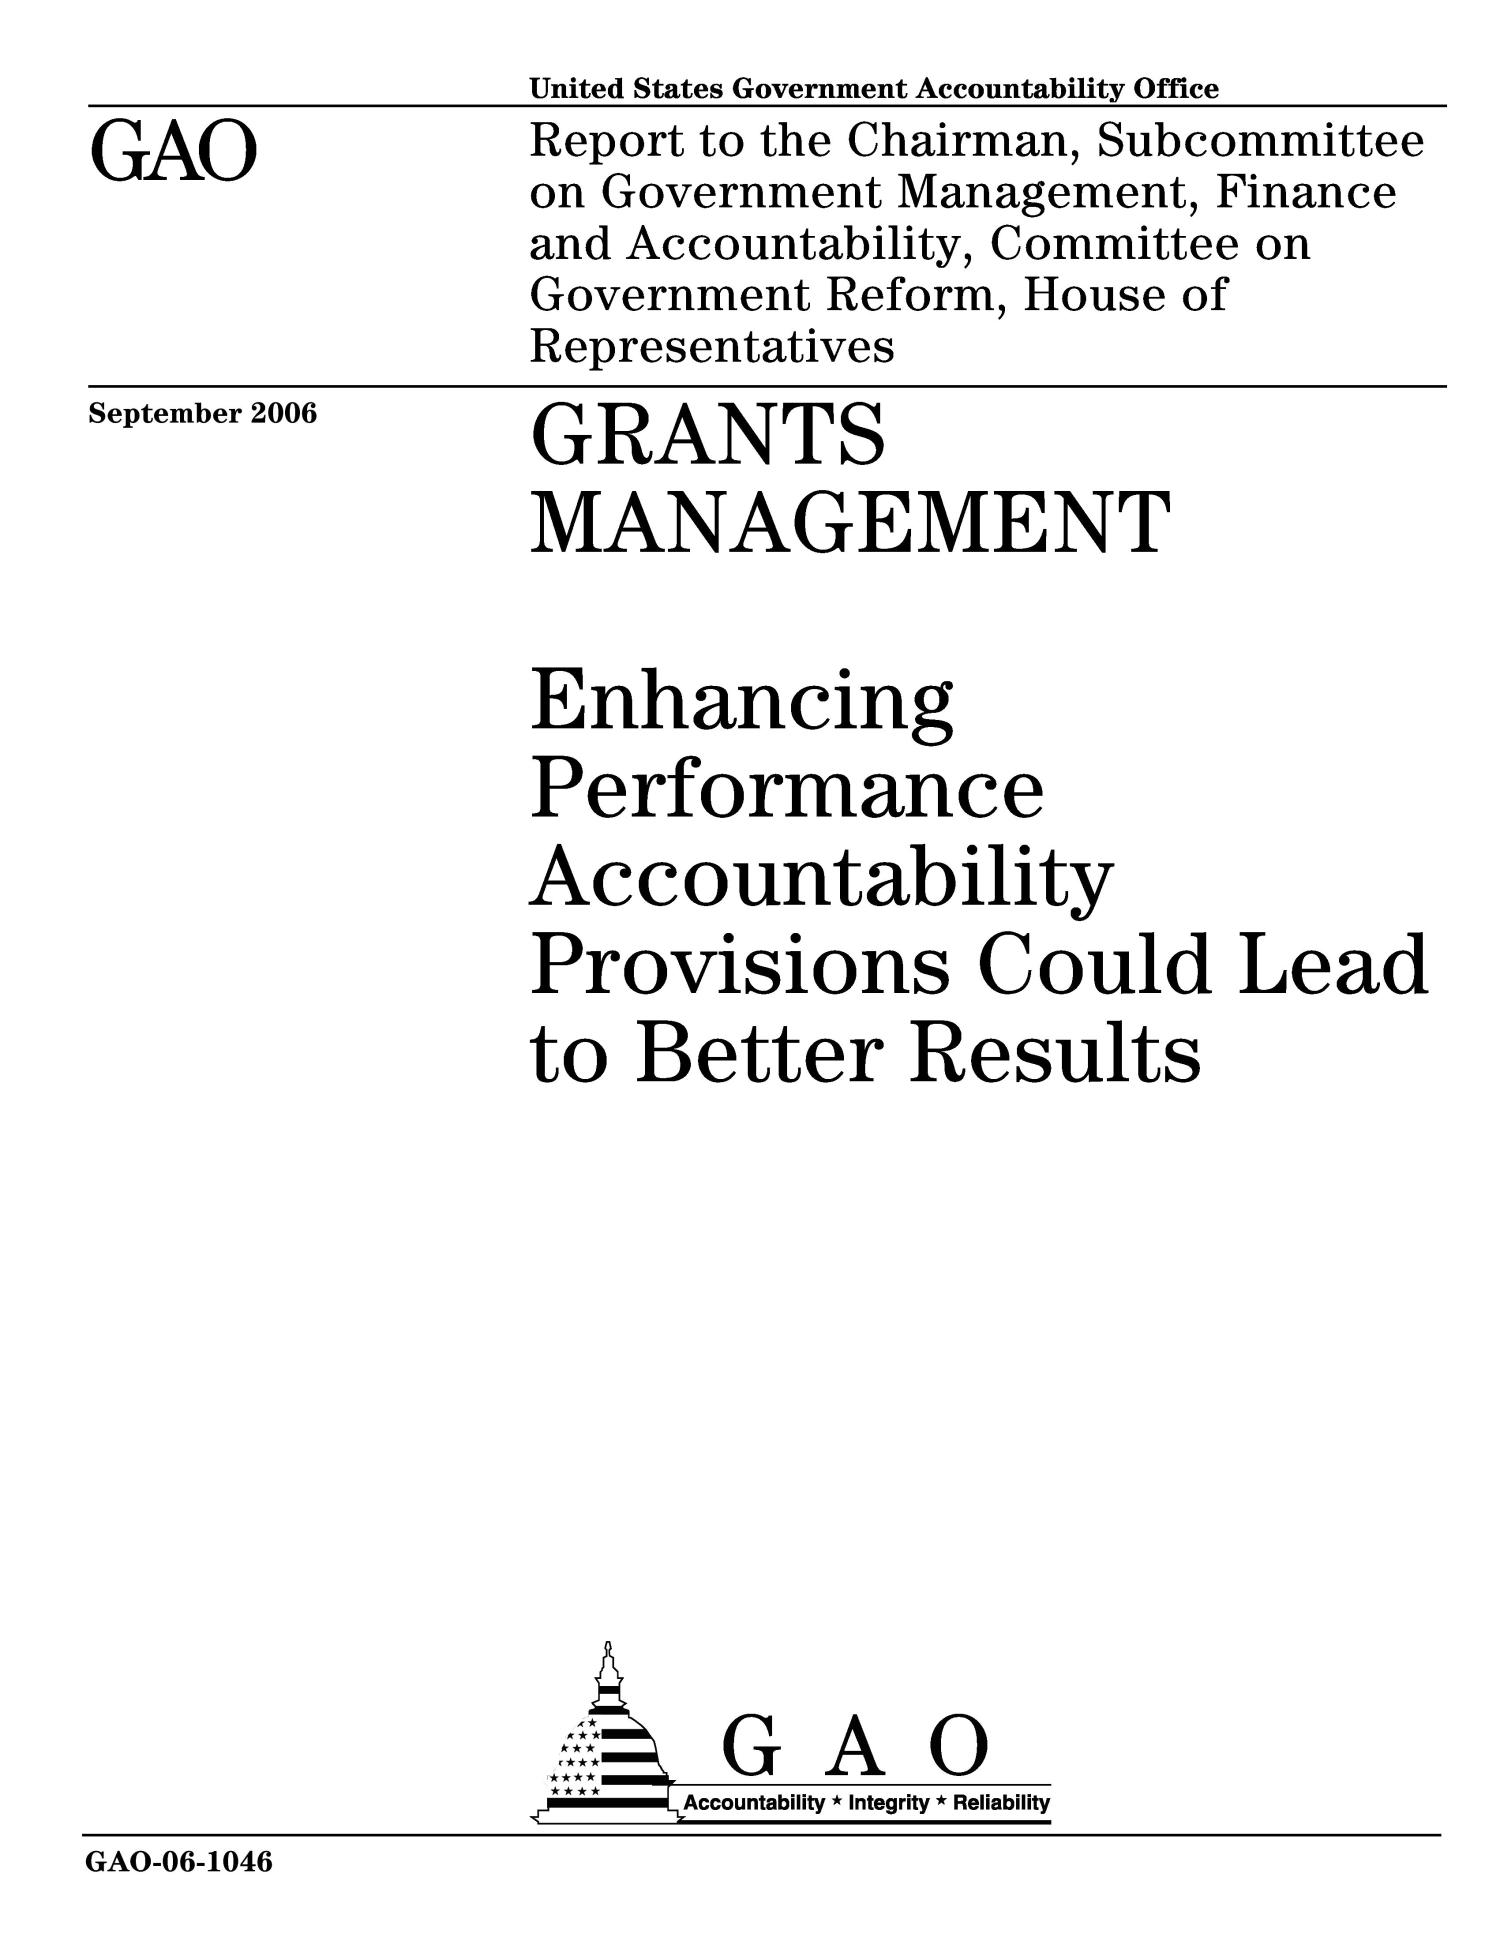 Grants Management: Enhancing Performance Accountability Provisions Could Lead to Better Results                                                                                                      [Sequence #]: 1 of 52